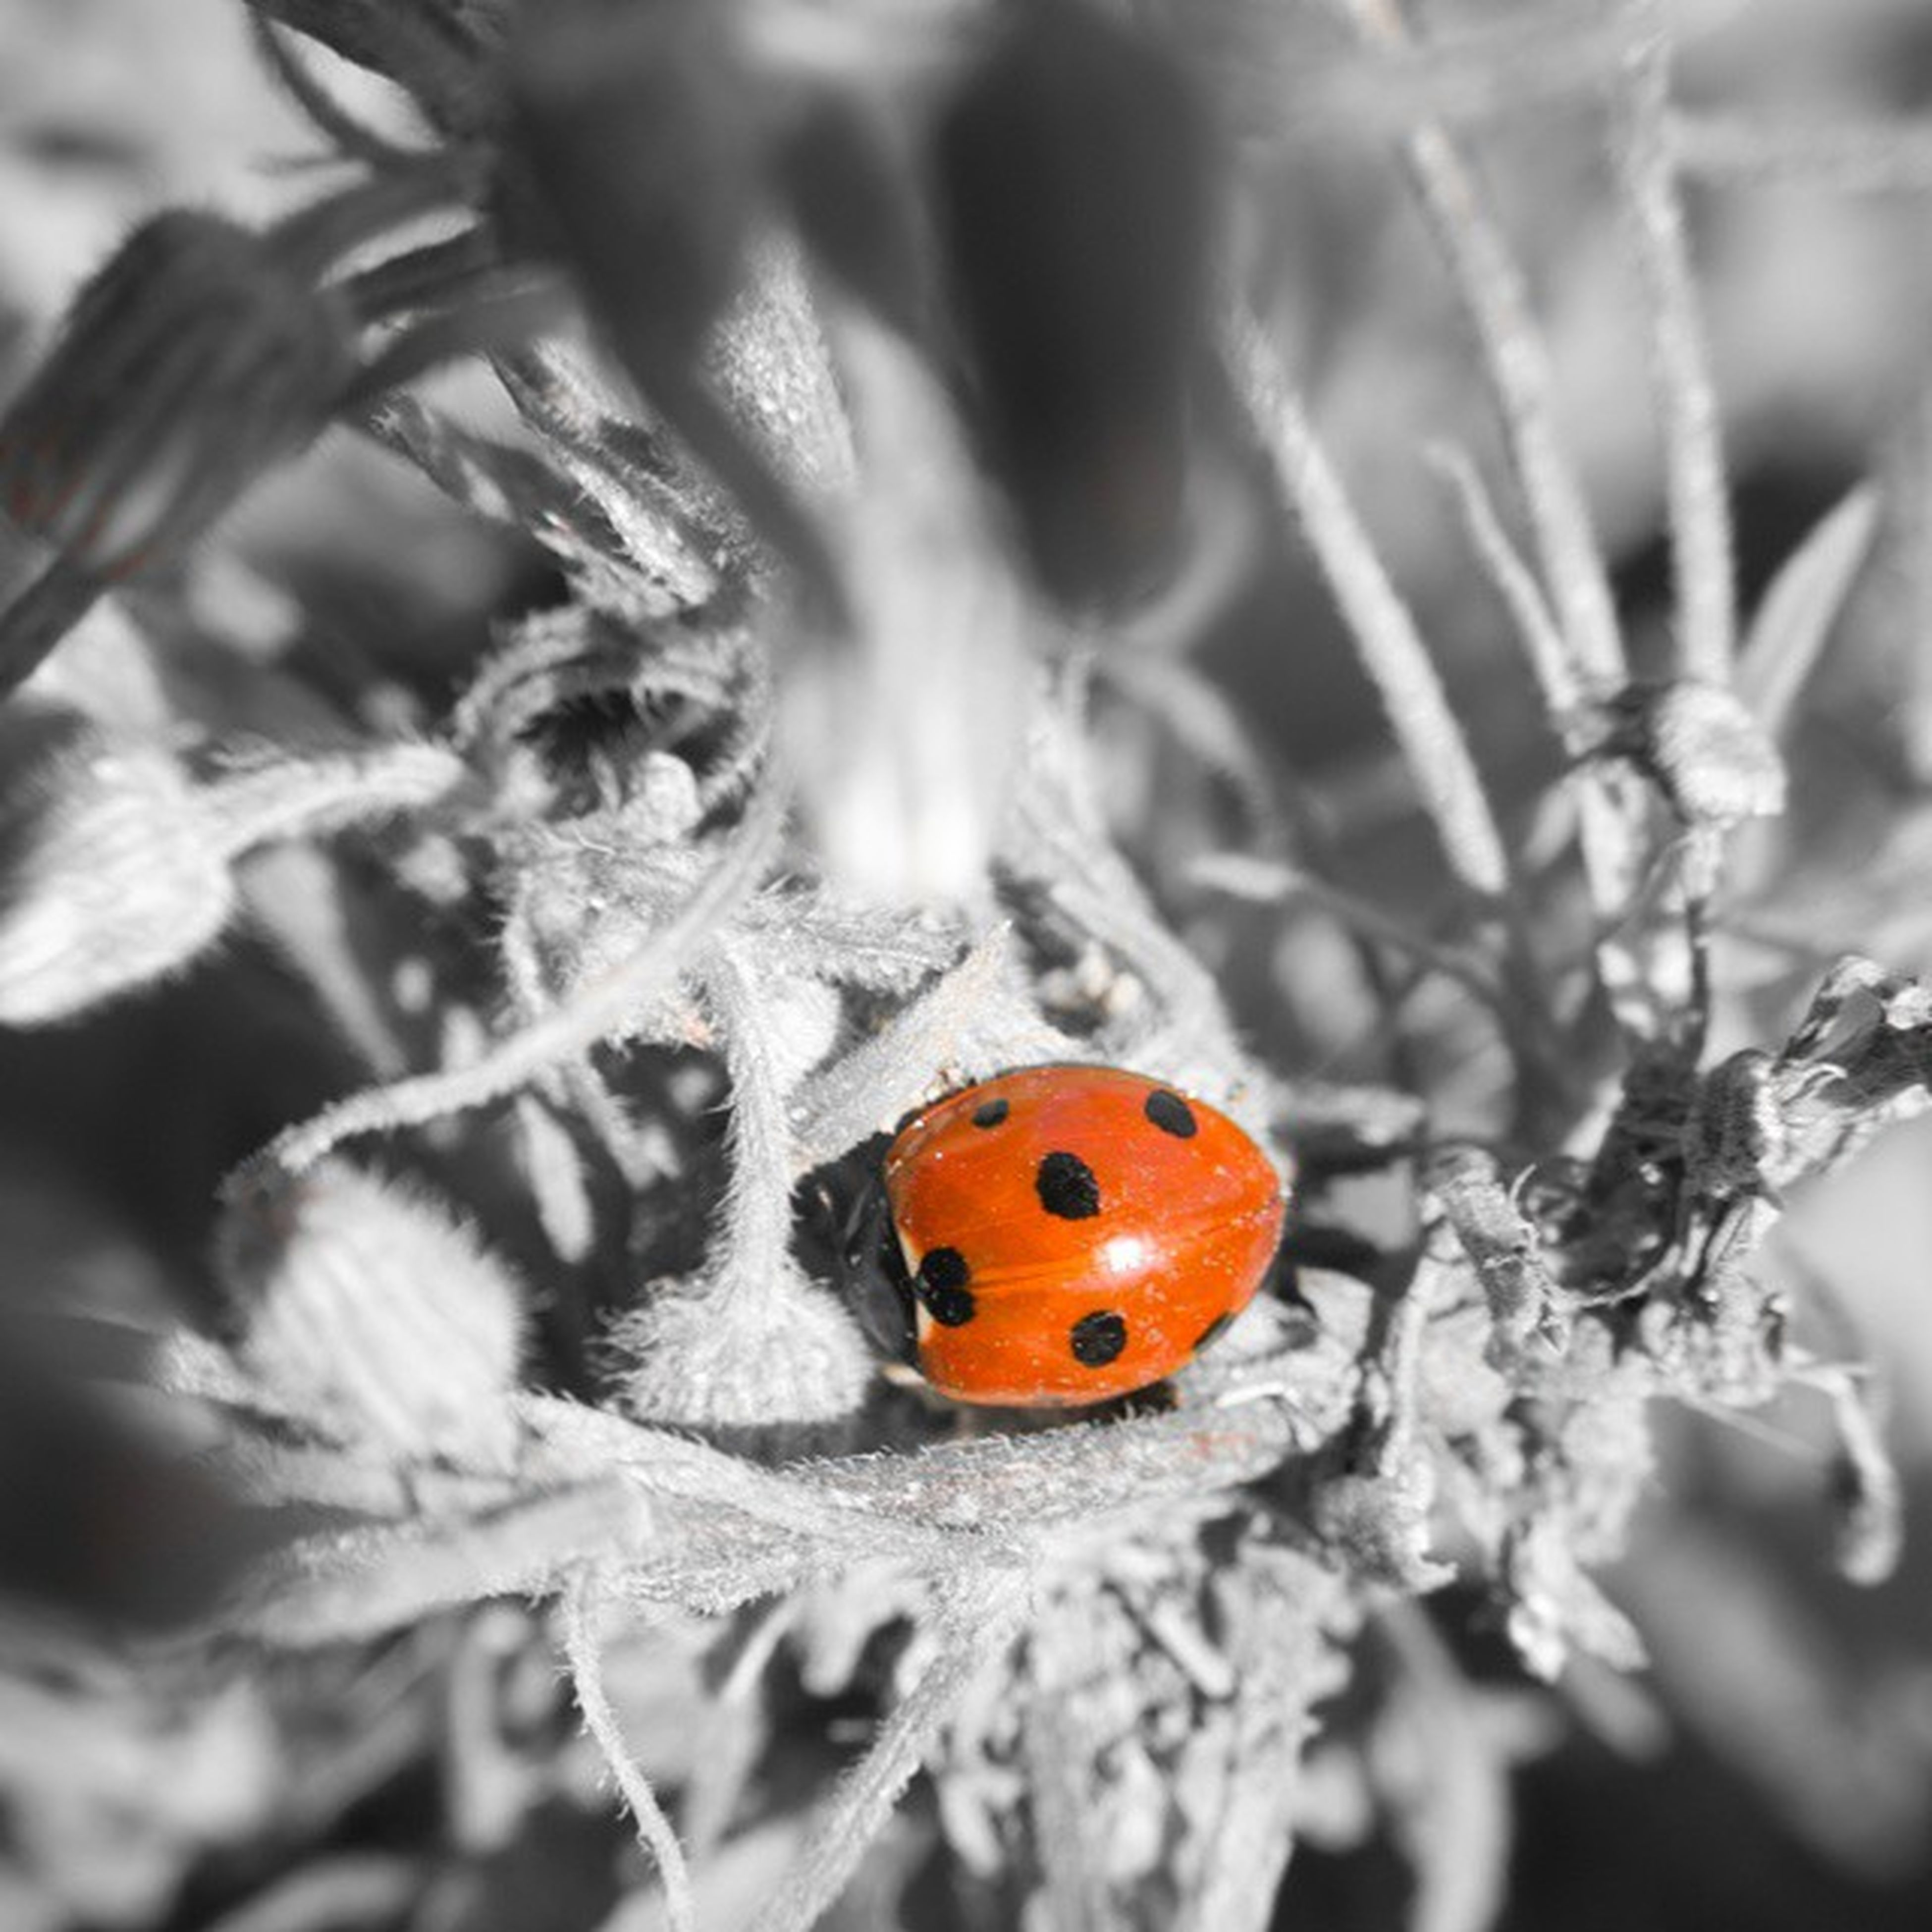 insect, animal themes, animals in the wild, ladybug, one animal, wildlife, close-up, focus on foreground, animal markings, orange color, nature, butterfly - insect, selective focus, beauty in nature, spotted, leaf, plant, butterfly, outdoors, no people